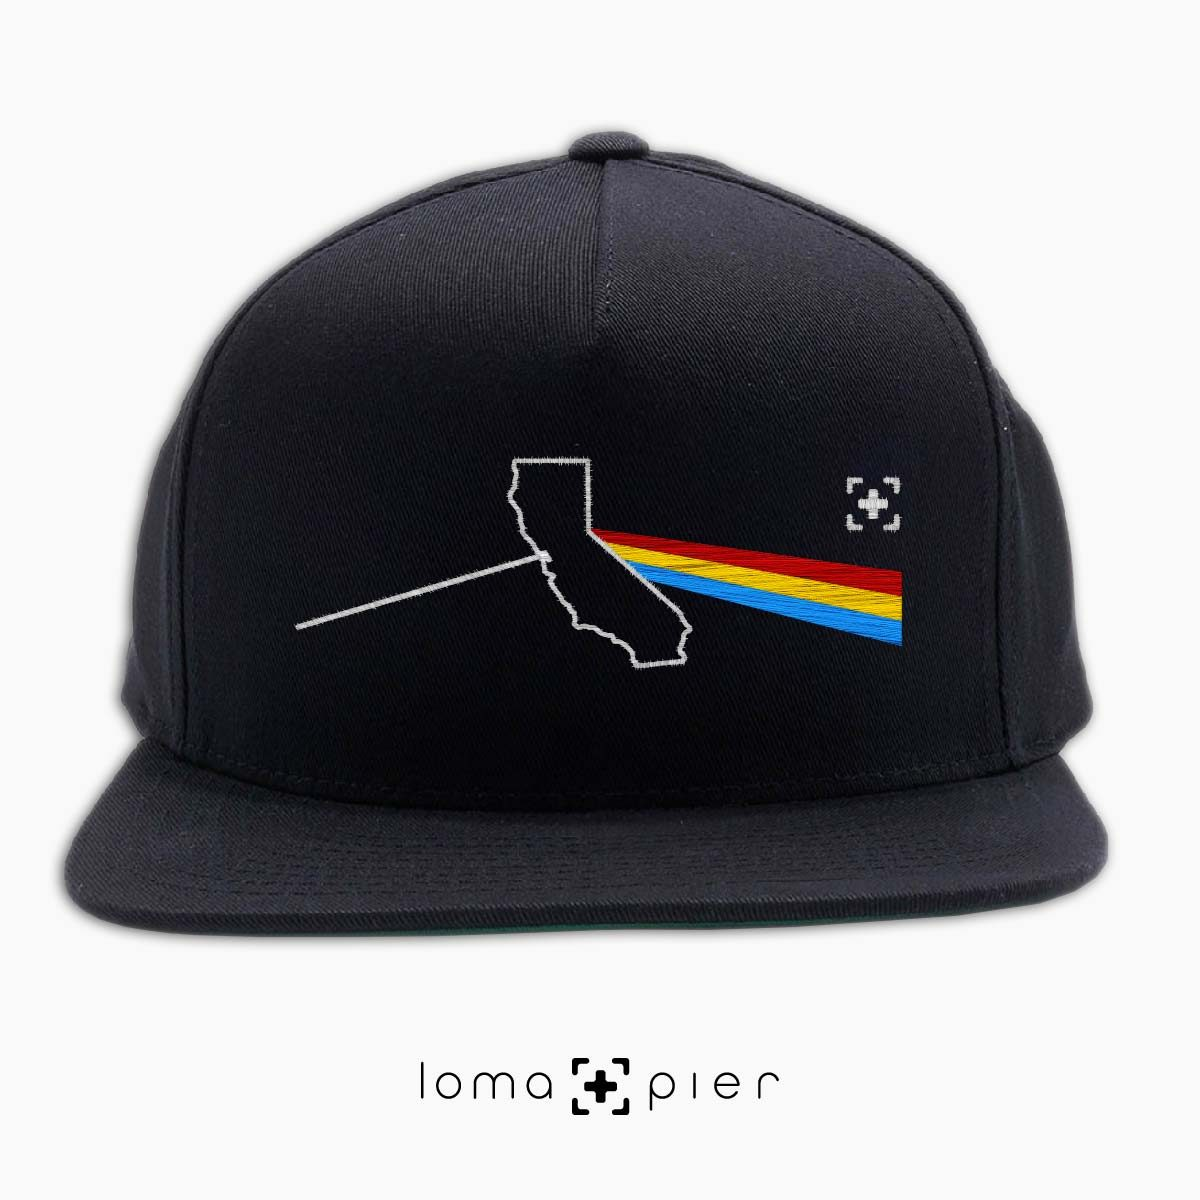 CALIFORNIA STATE PRISM album art snapback hat in black by loma+pier hat store